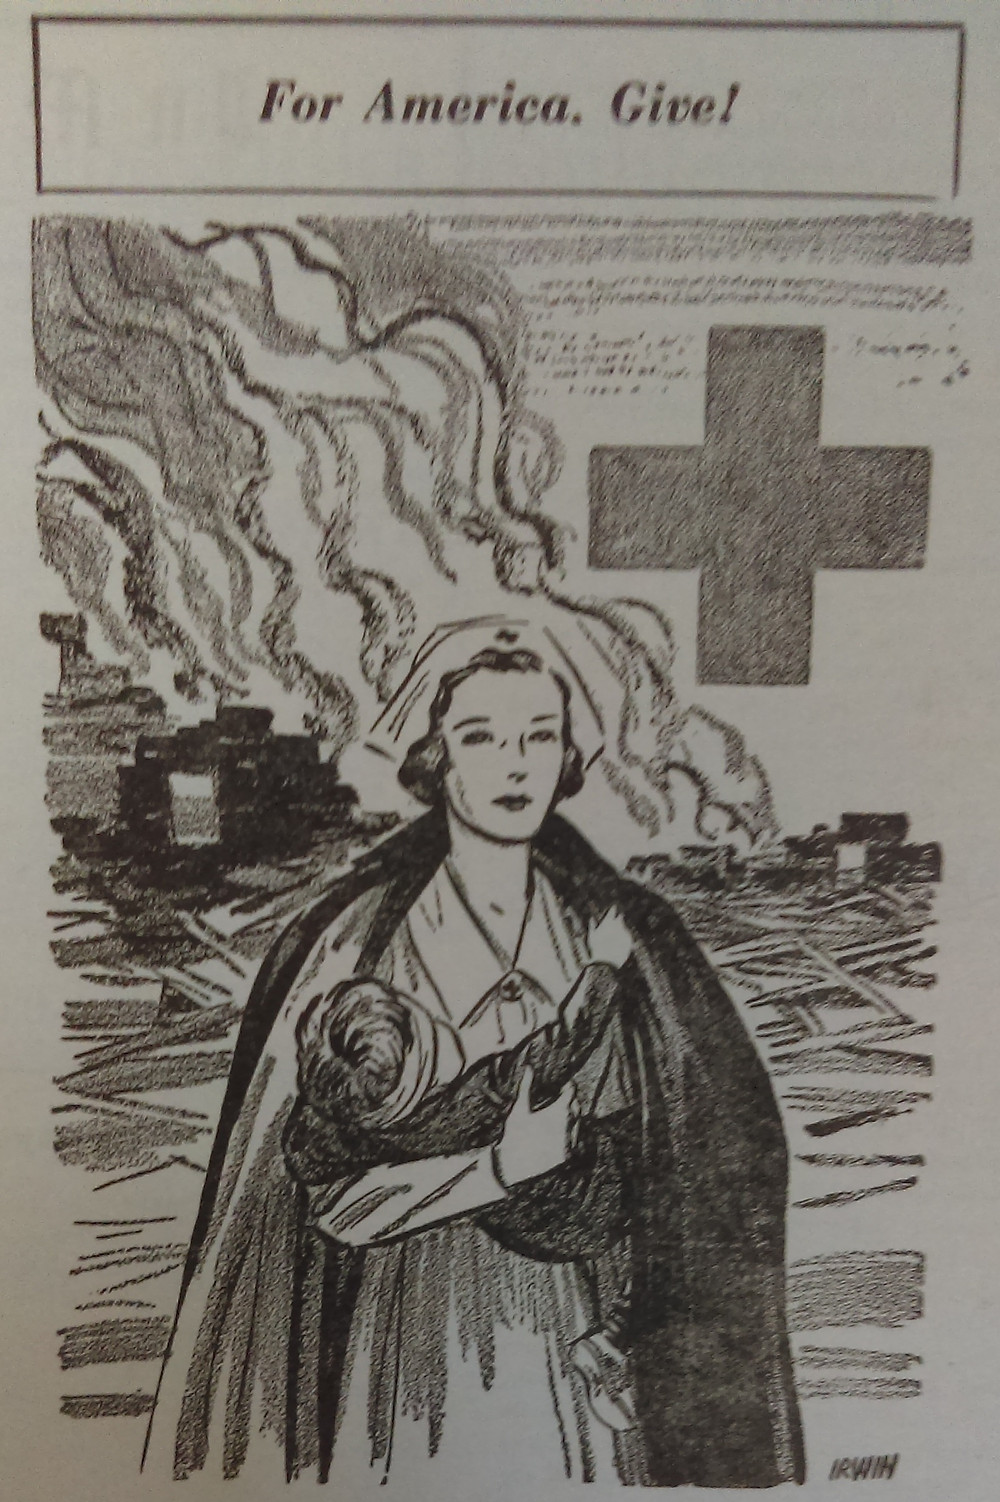 Red Cross ad from the Vasa Star.